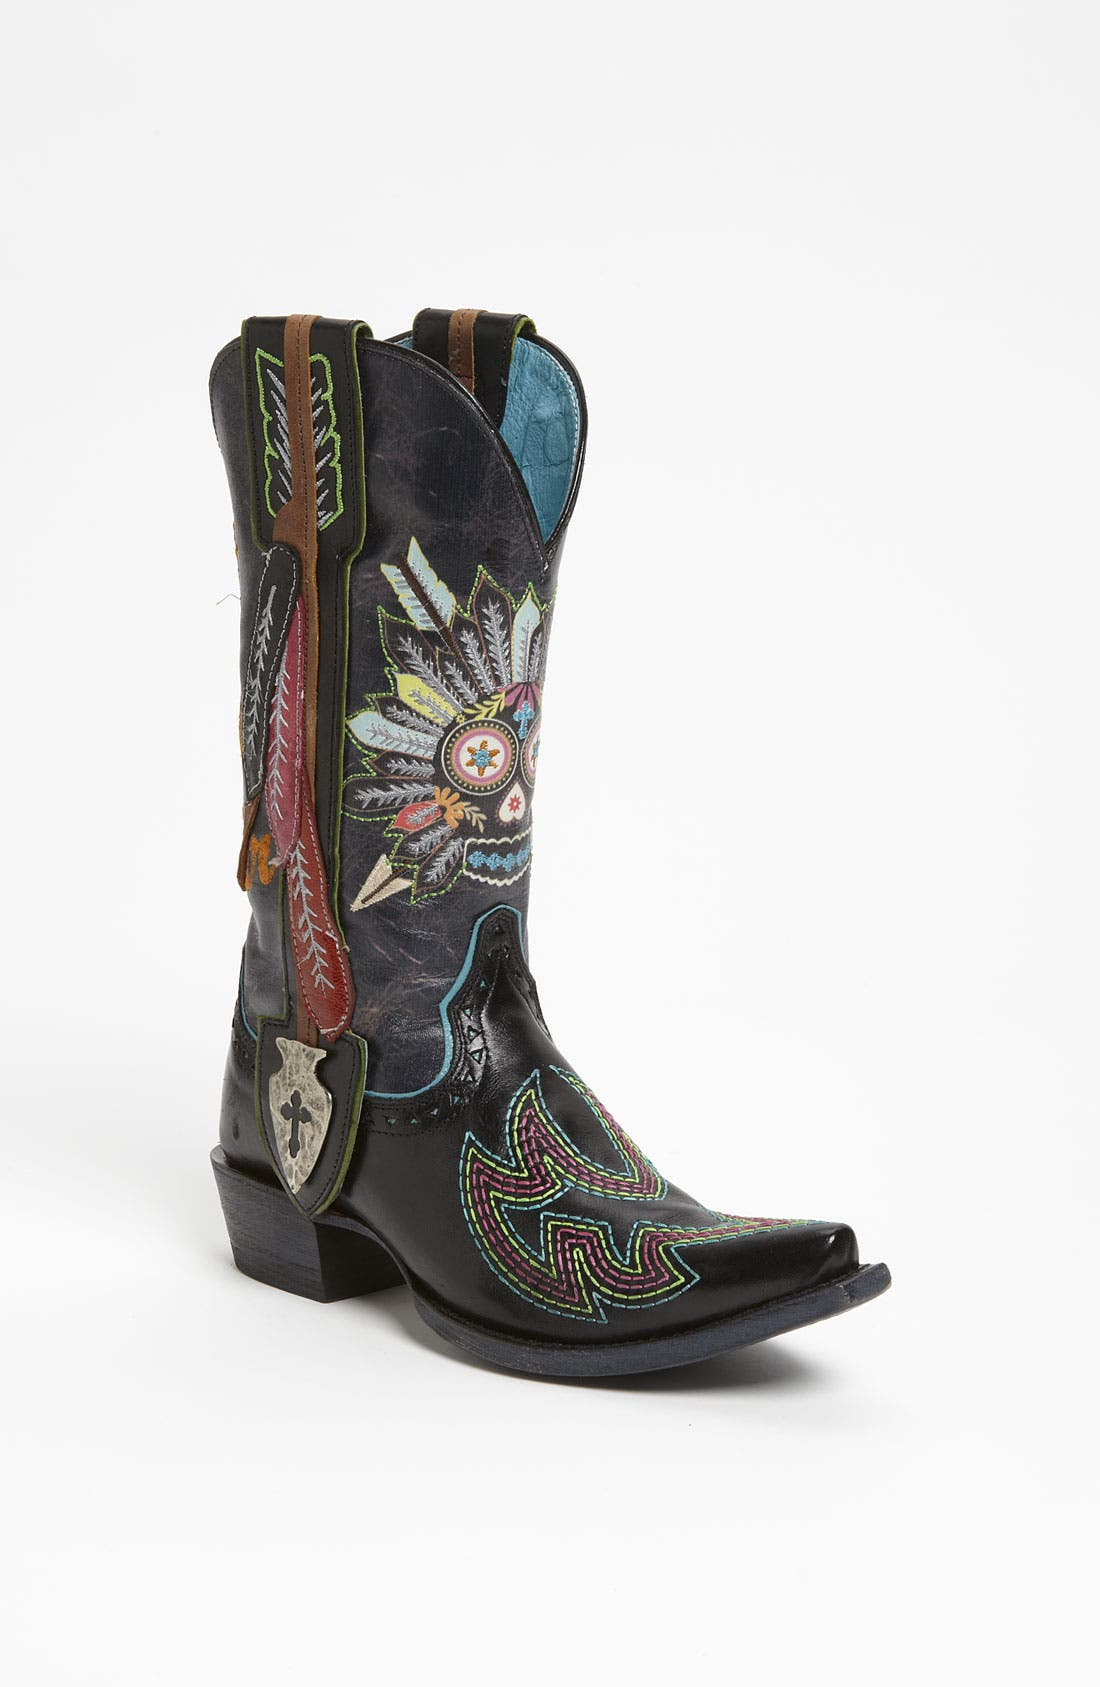 Alternate Image 1 Selected - Ariat 'Sugar Soule' Boot